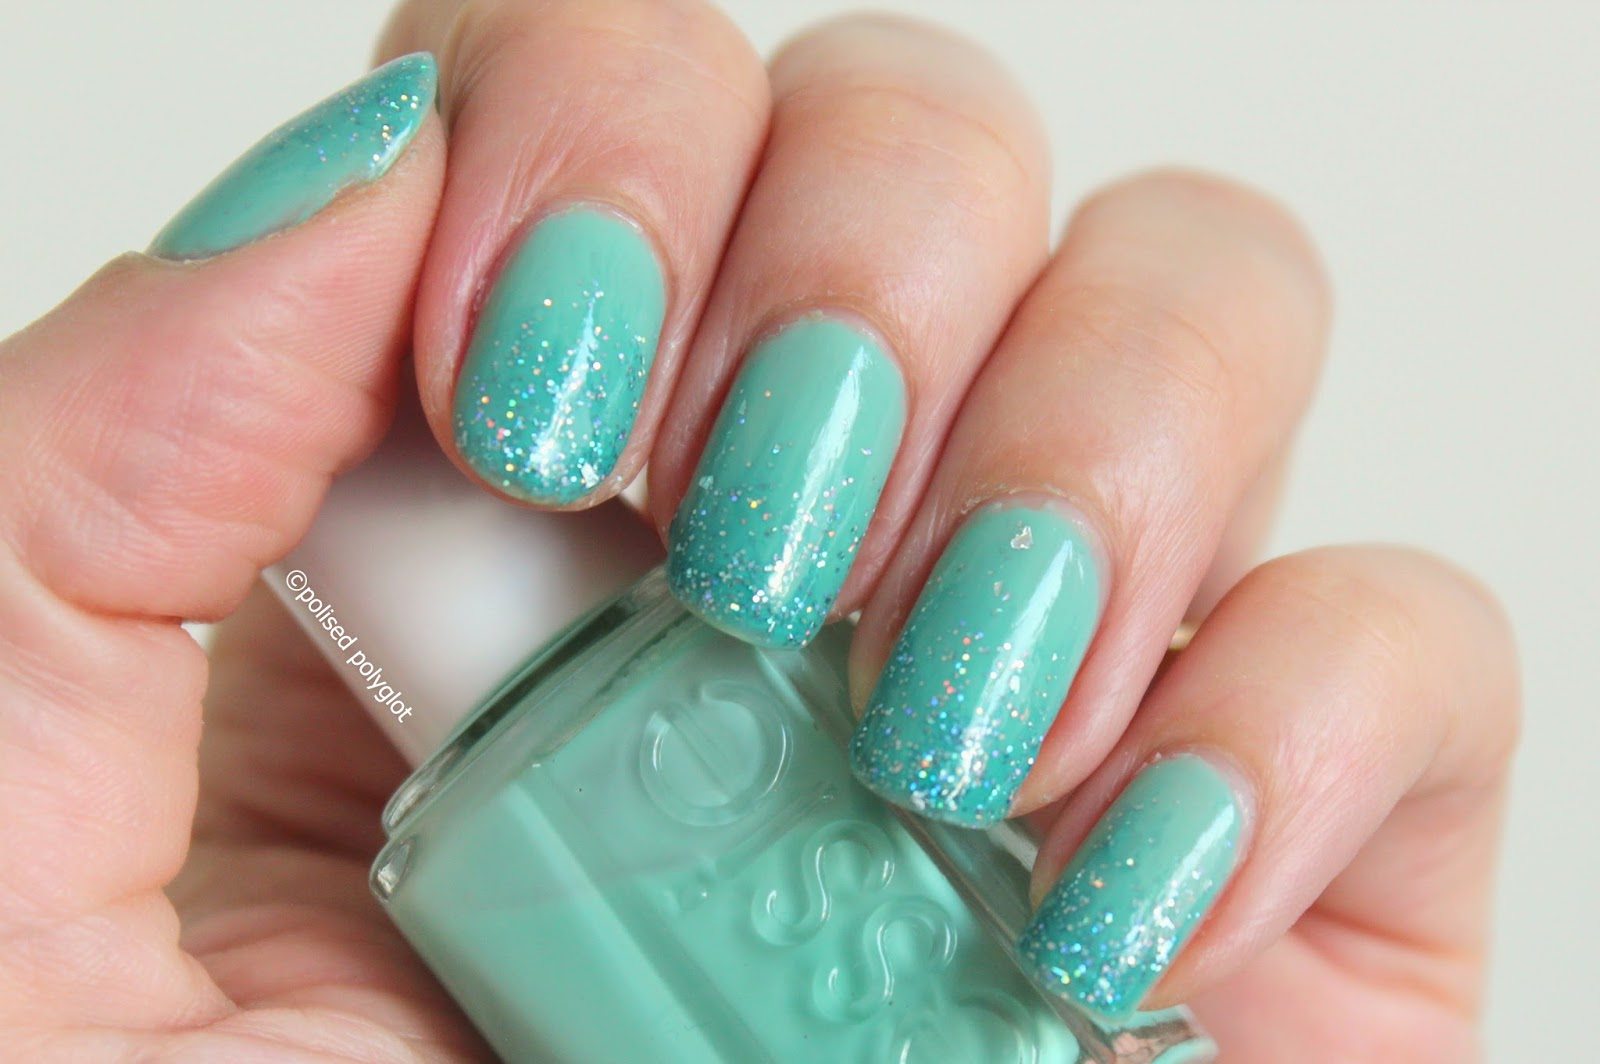 40 Great Nail Art Ideas: Aqua or turquoise / Polished Polyglot